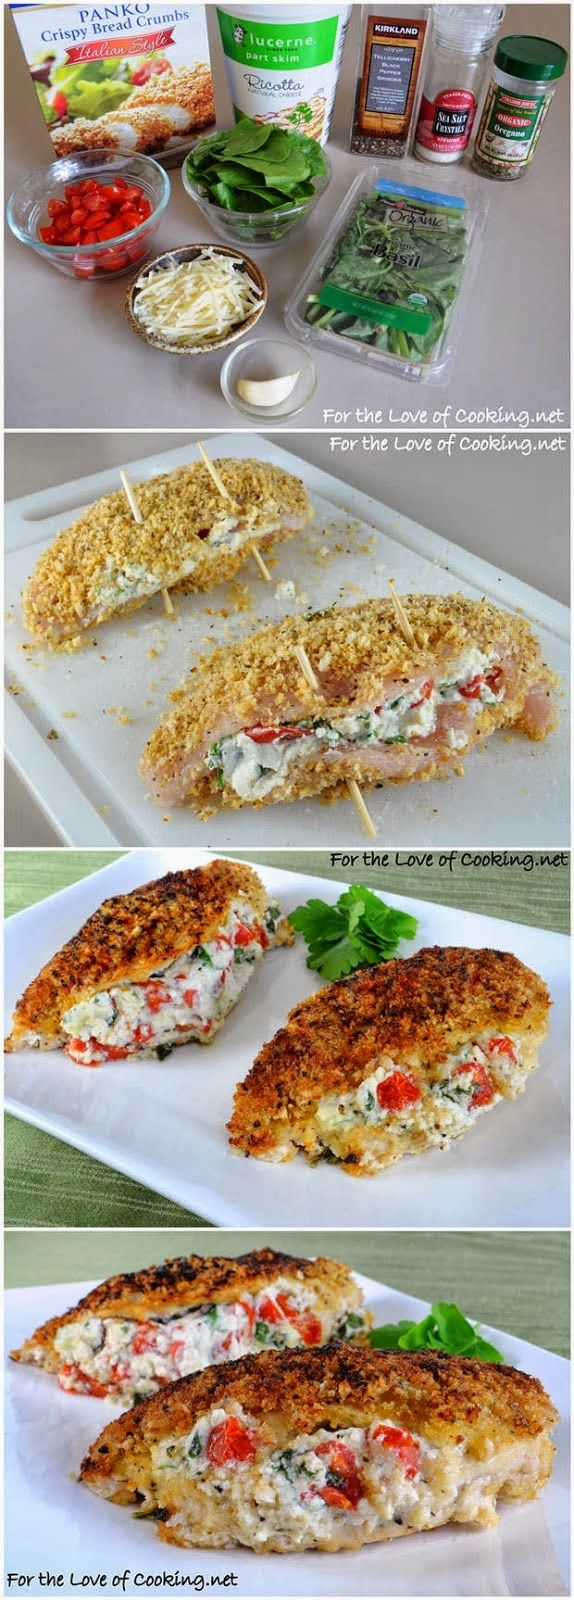 Panko Crusted Chicken Stuffed with Ricotta, Spinach, Tomatoes, and Basil | The Best Healthy Recipes